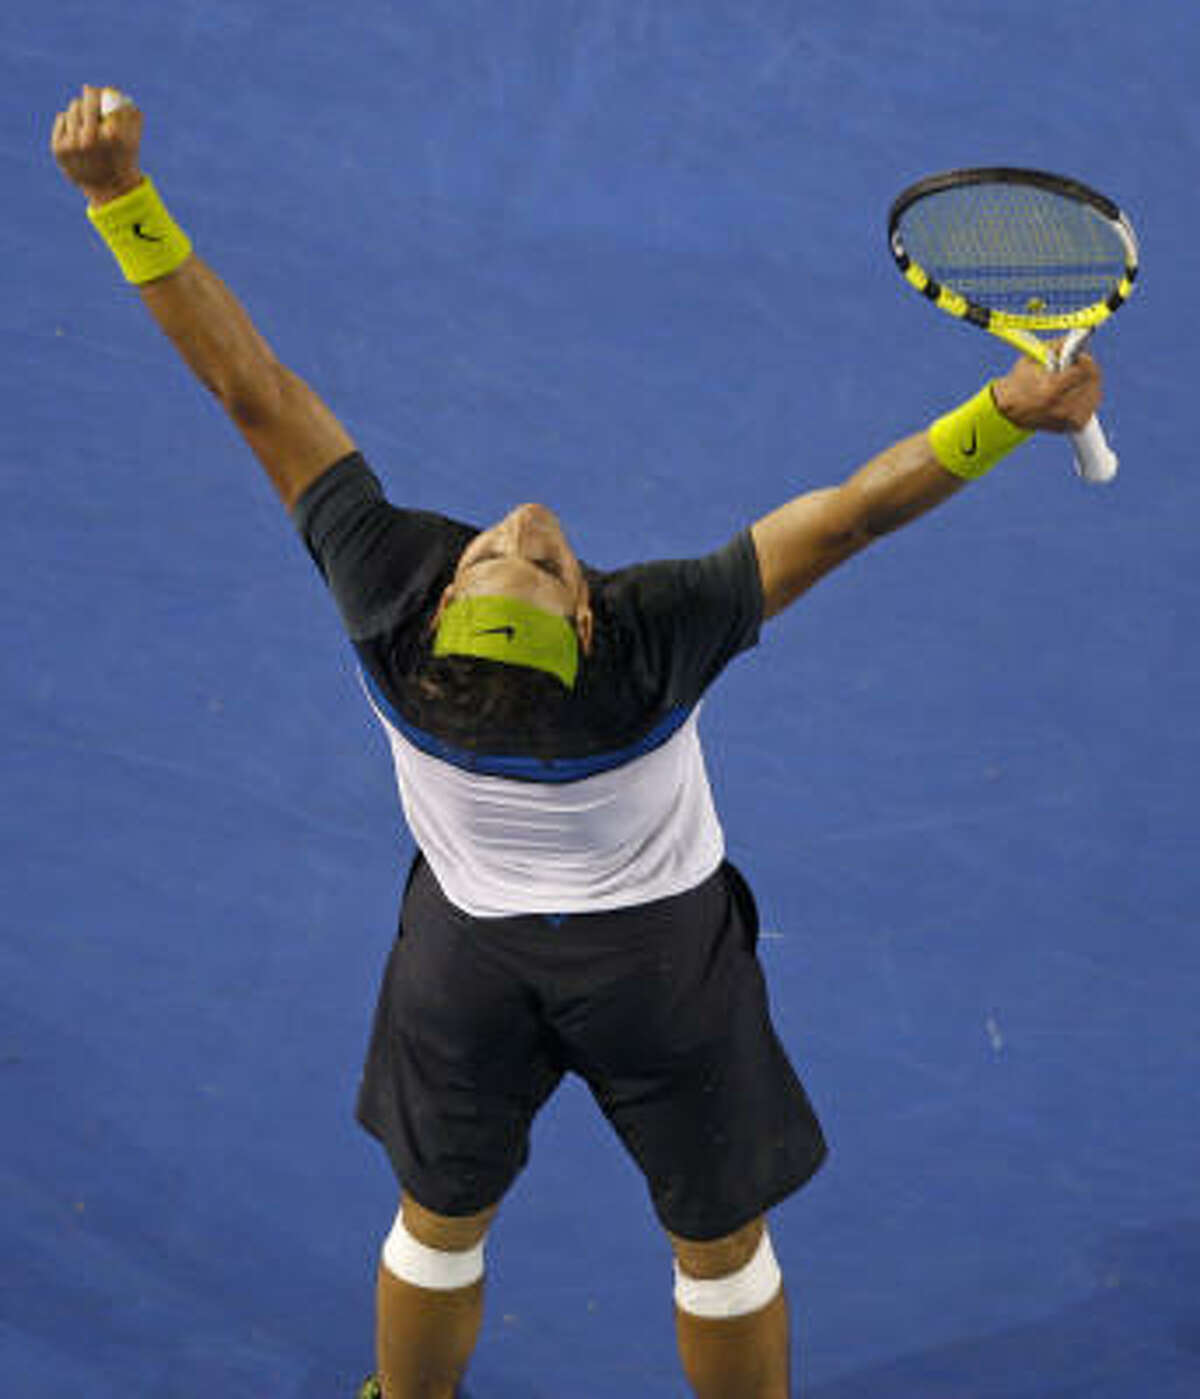 February 1, Rafael Nadal defeats Roger Federer in men's final Rafael Nadal, who has four consecutive titles on clay at Roland Garros and beat Roger Federer on grass in a five-set epic at Wimbledon last year, became the first Spaniard to win the Australian title.